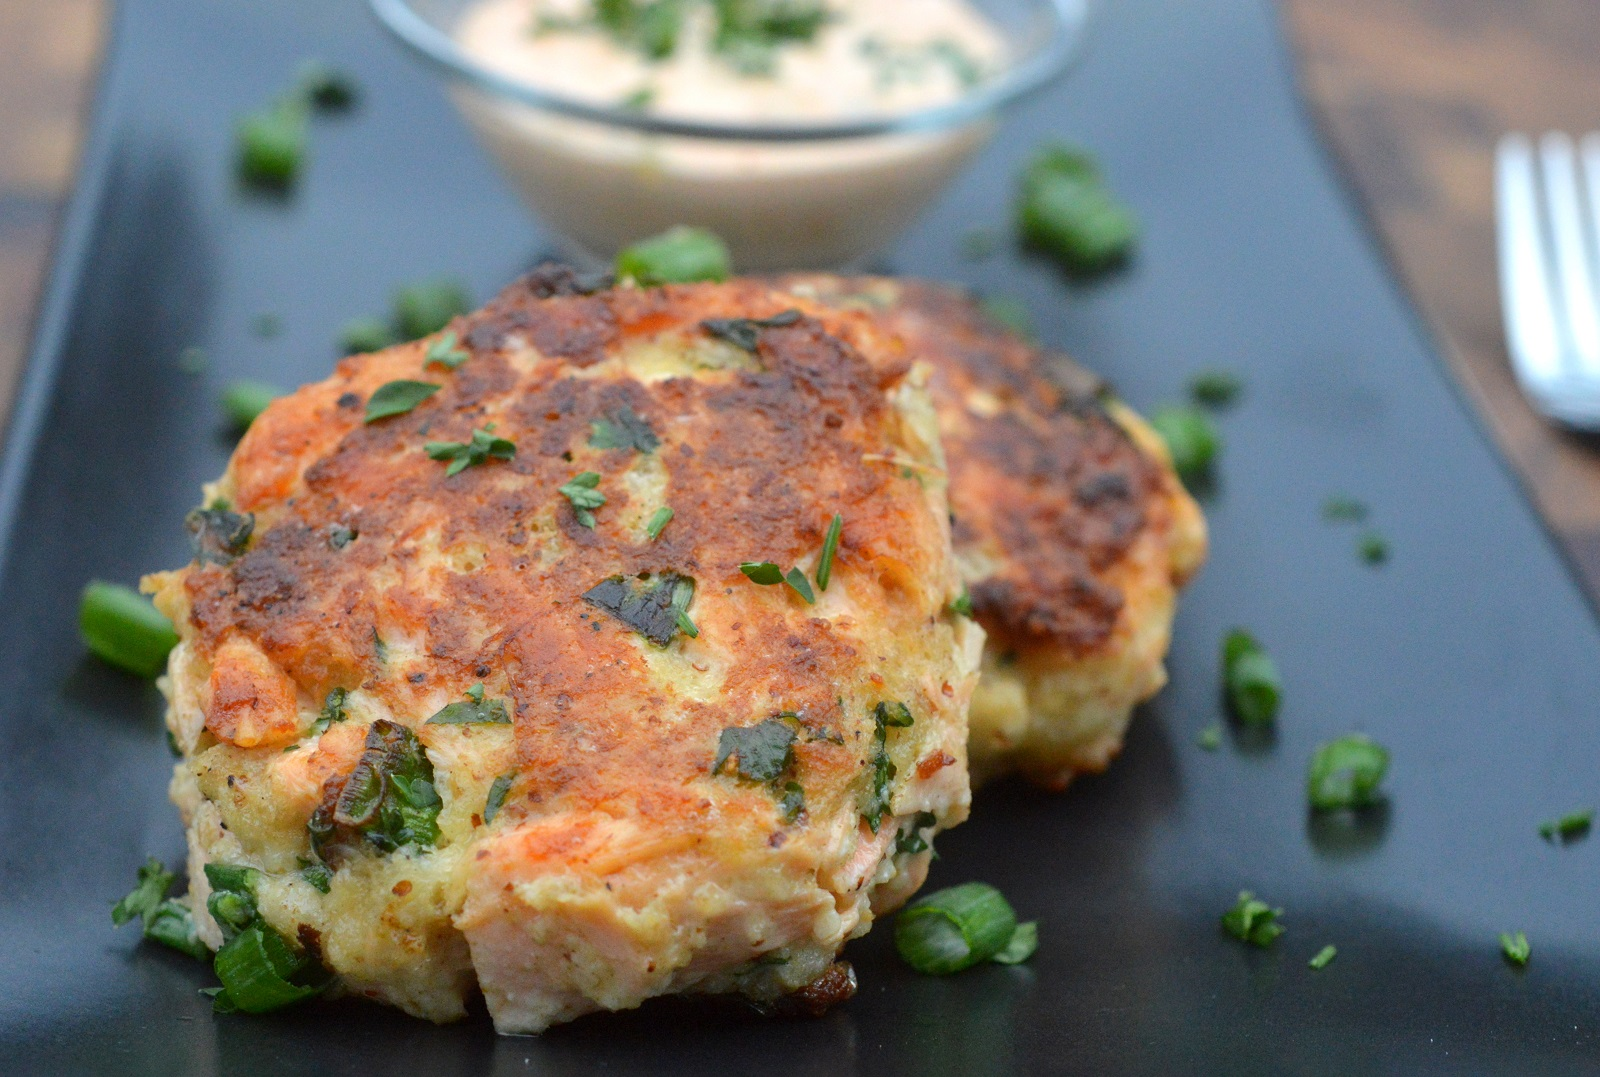 Image of cooked salmon cakes on a plate.